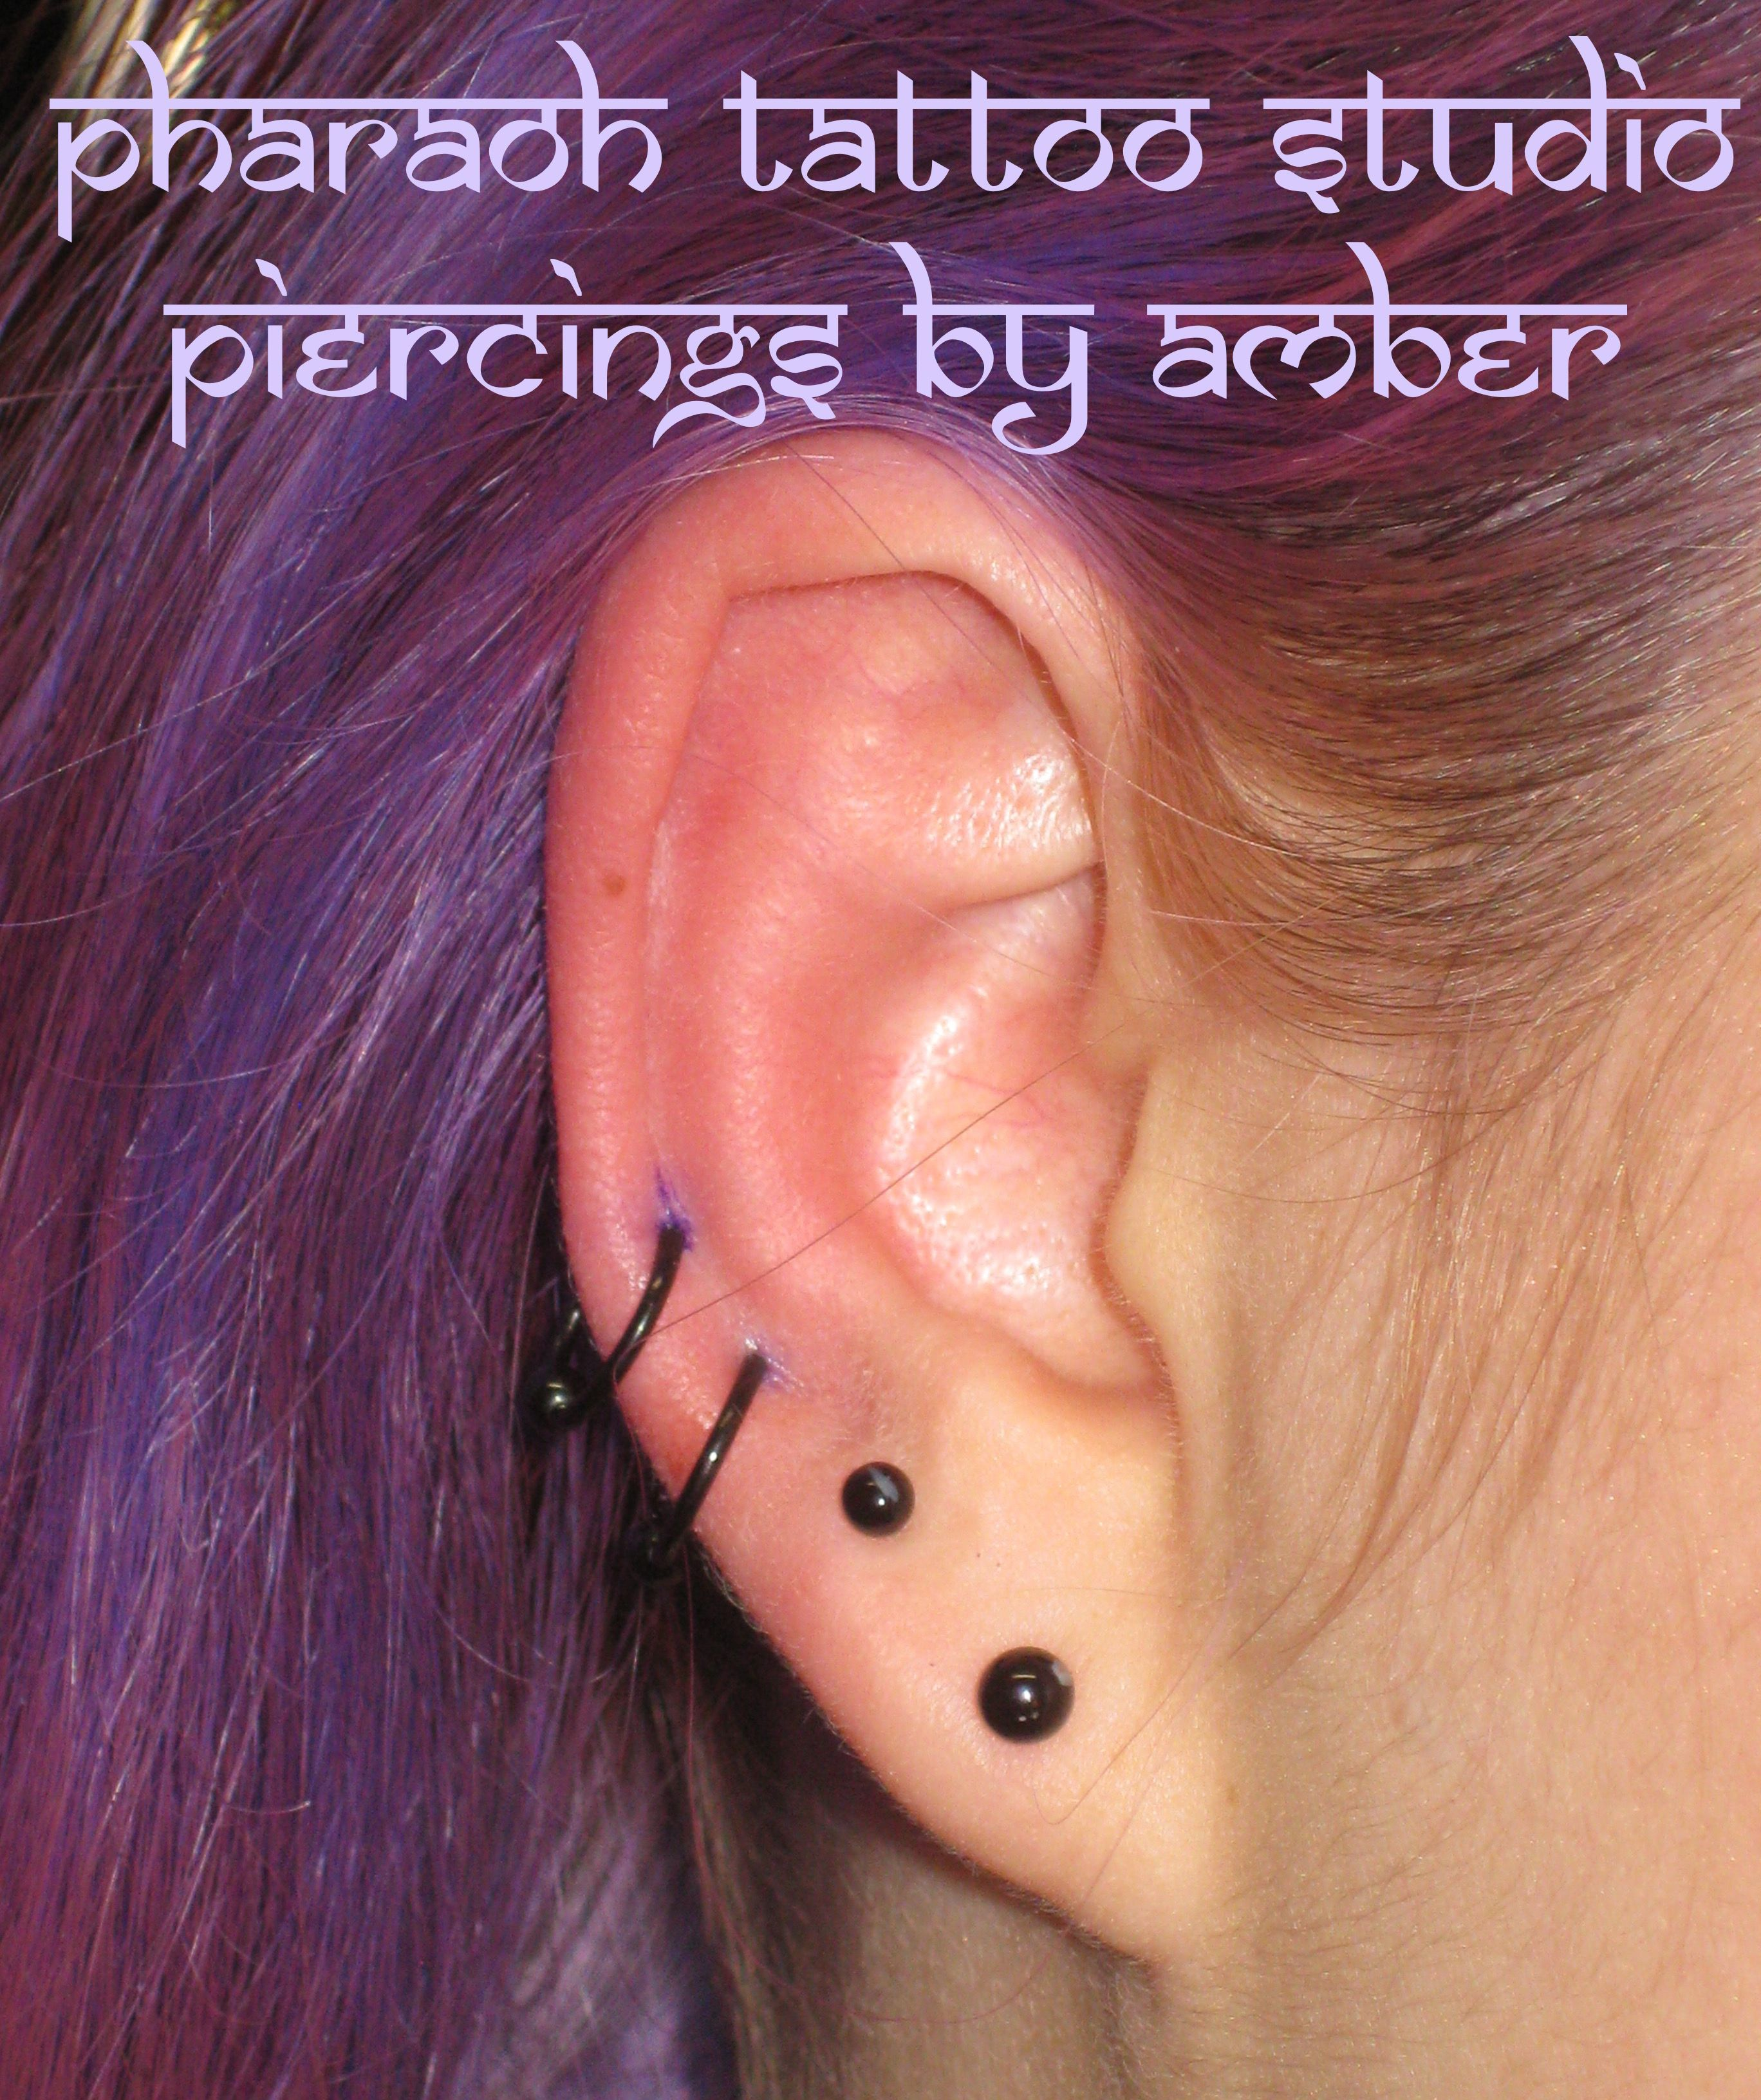 Body piercing near me  Ear piercings I did My almost a decade of industry experience has